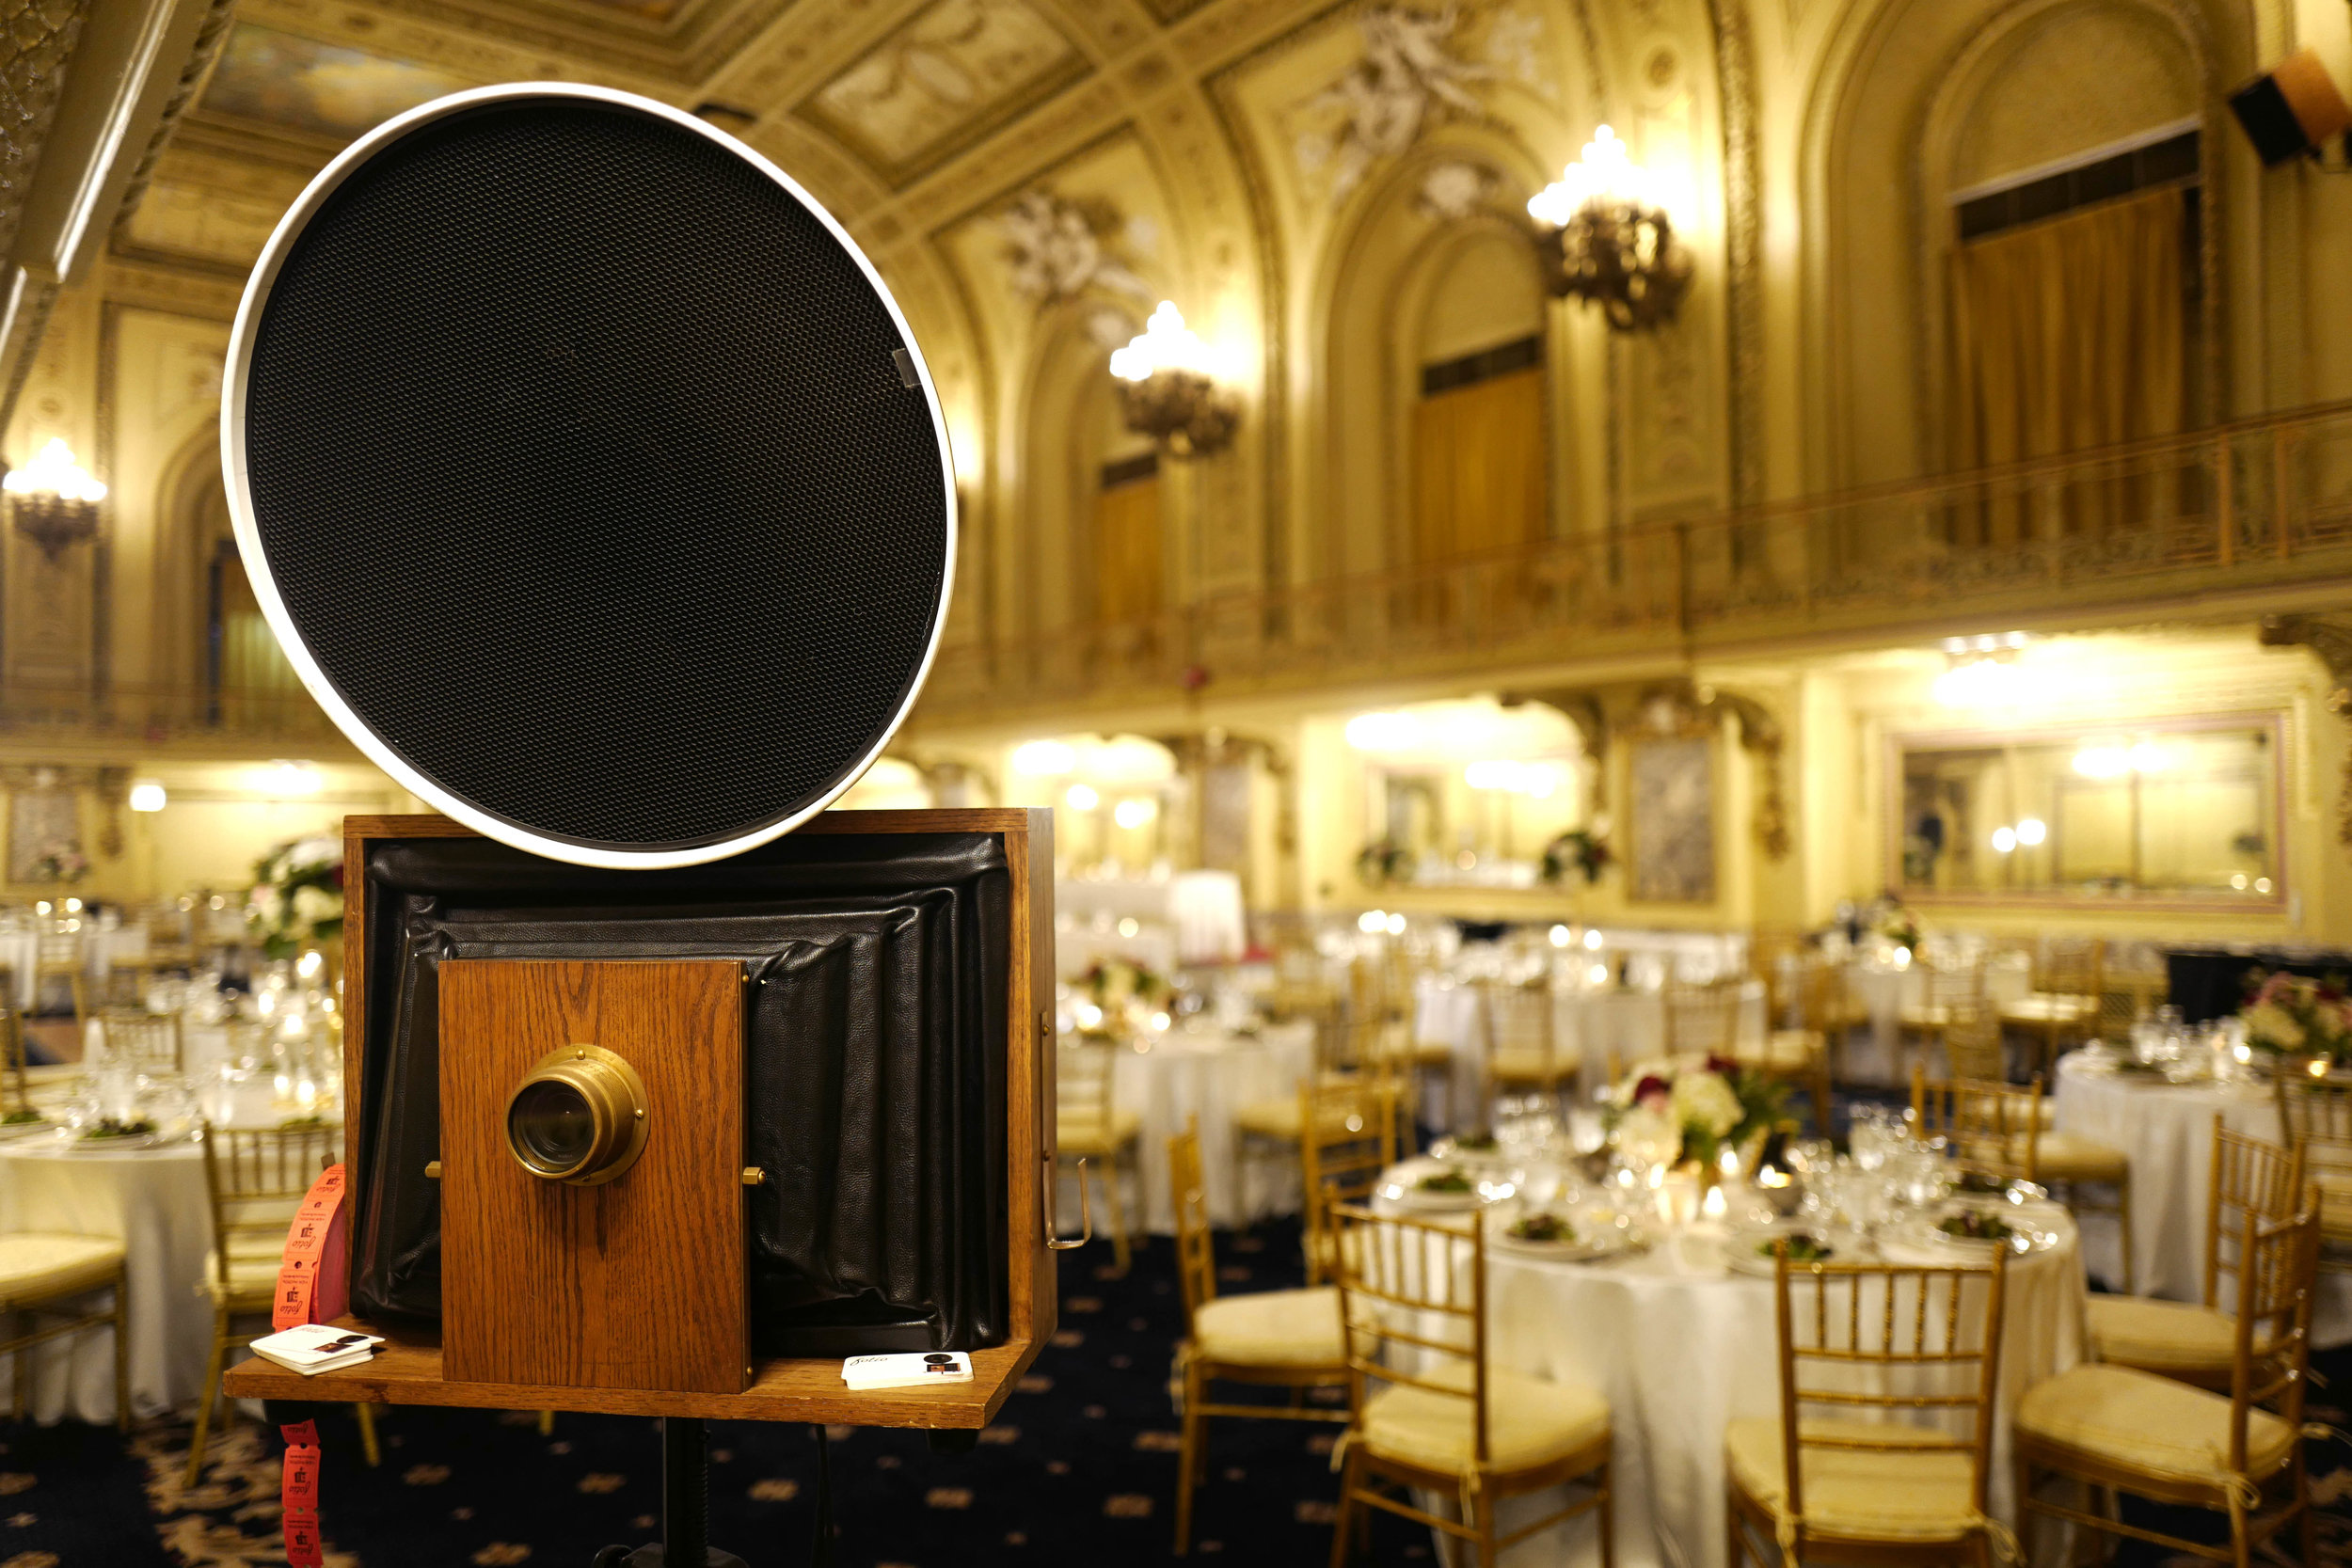 A Fotio Photo Booth setup in the Congress Hotel Gold Room.